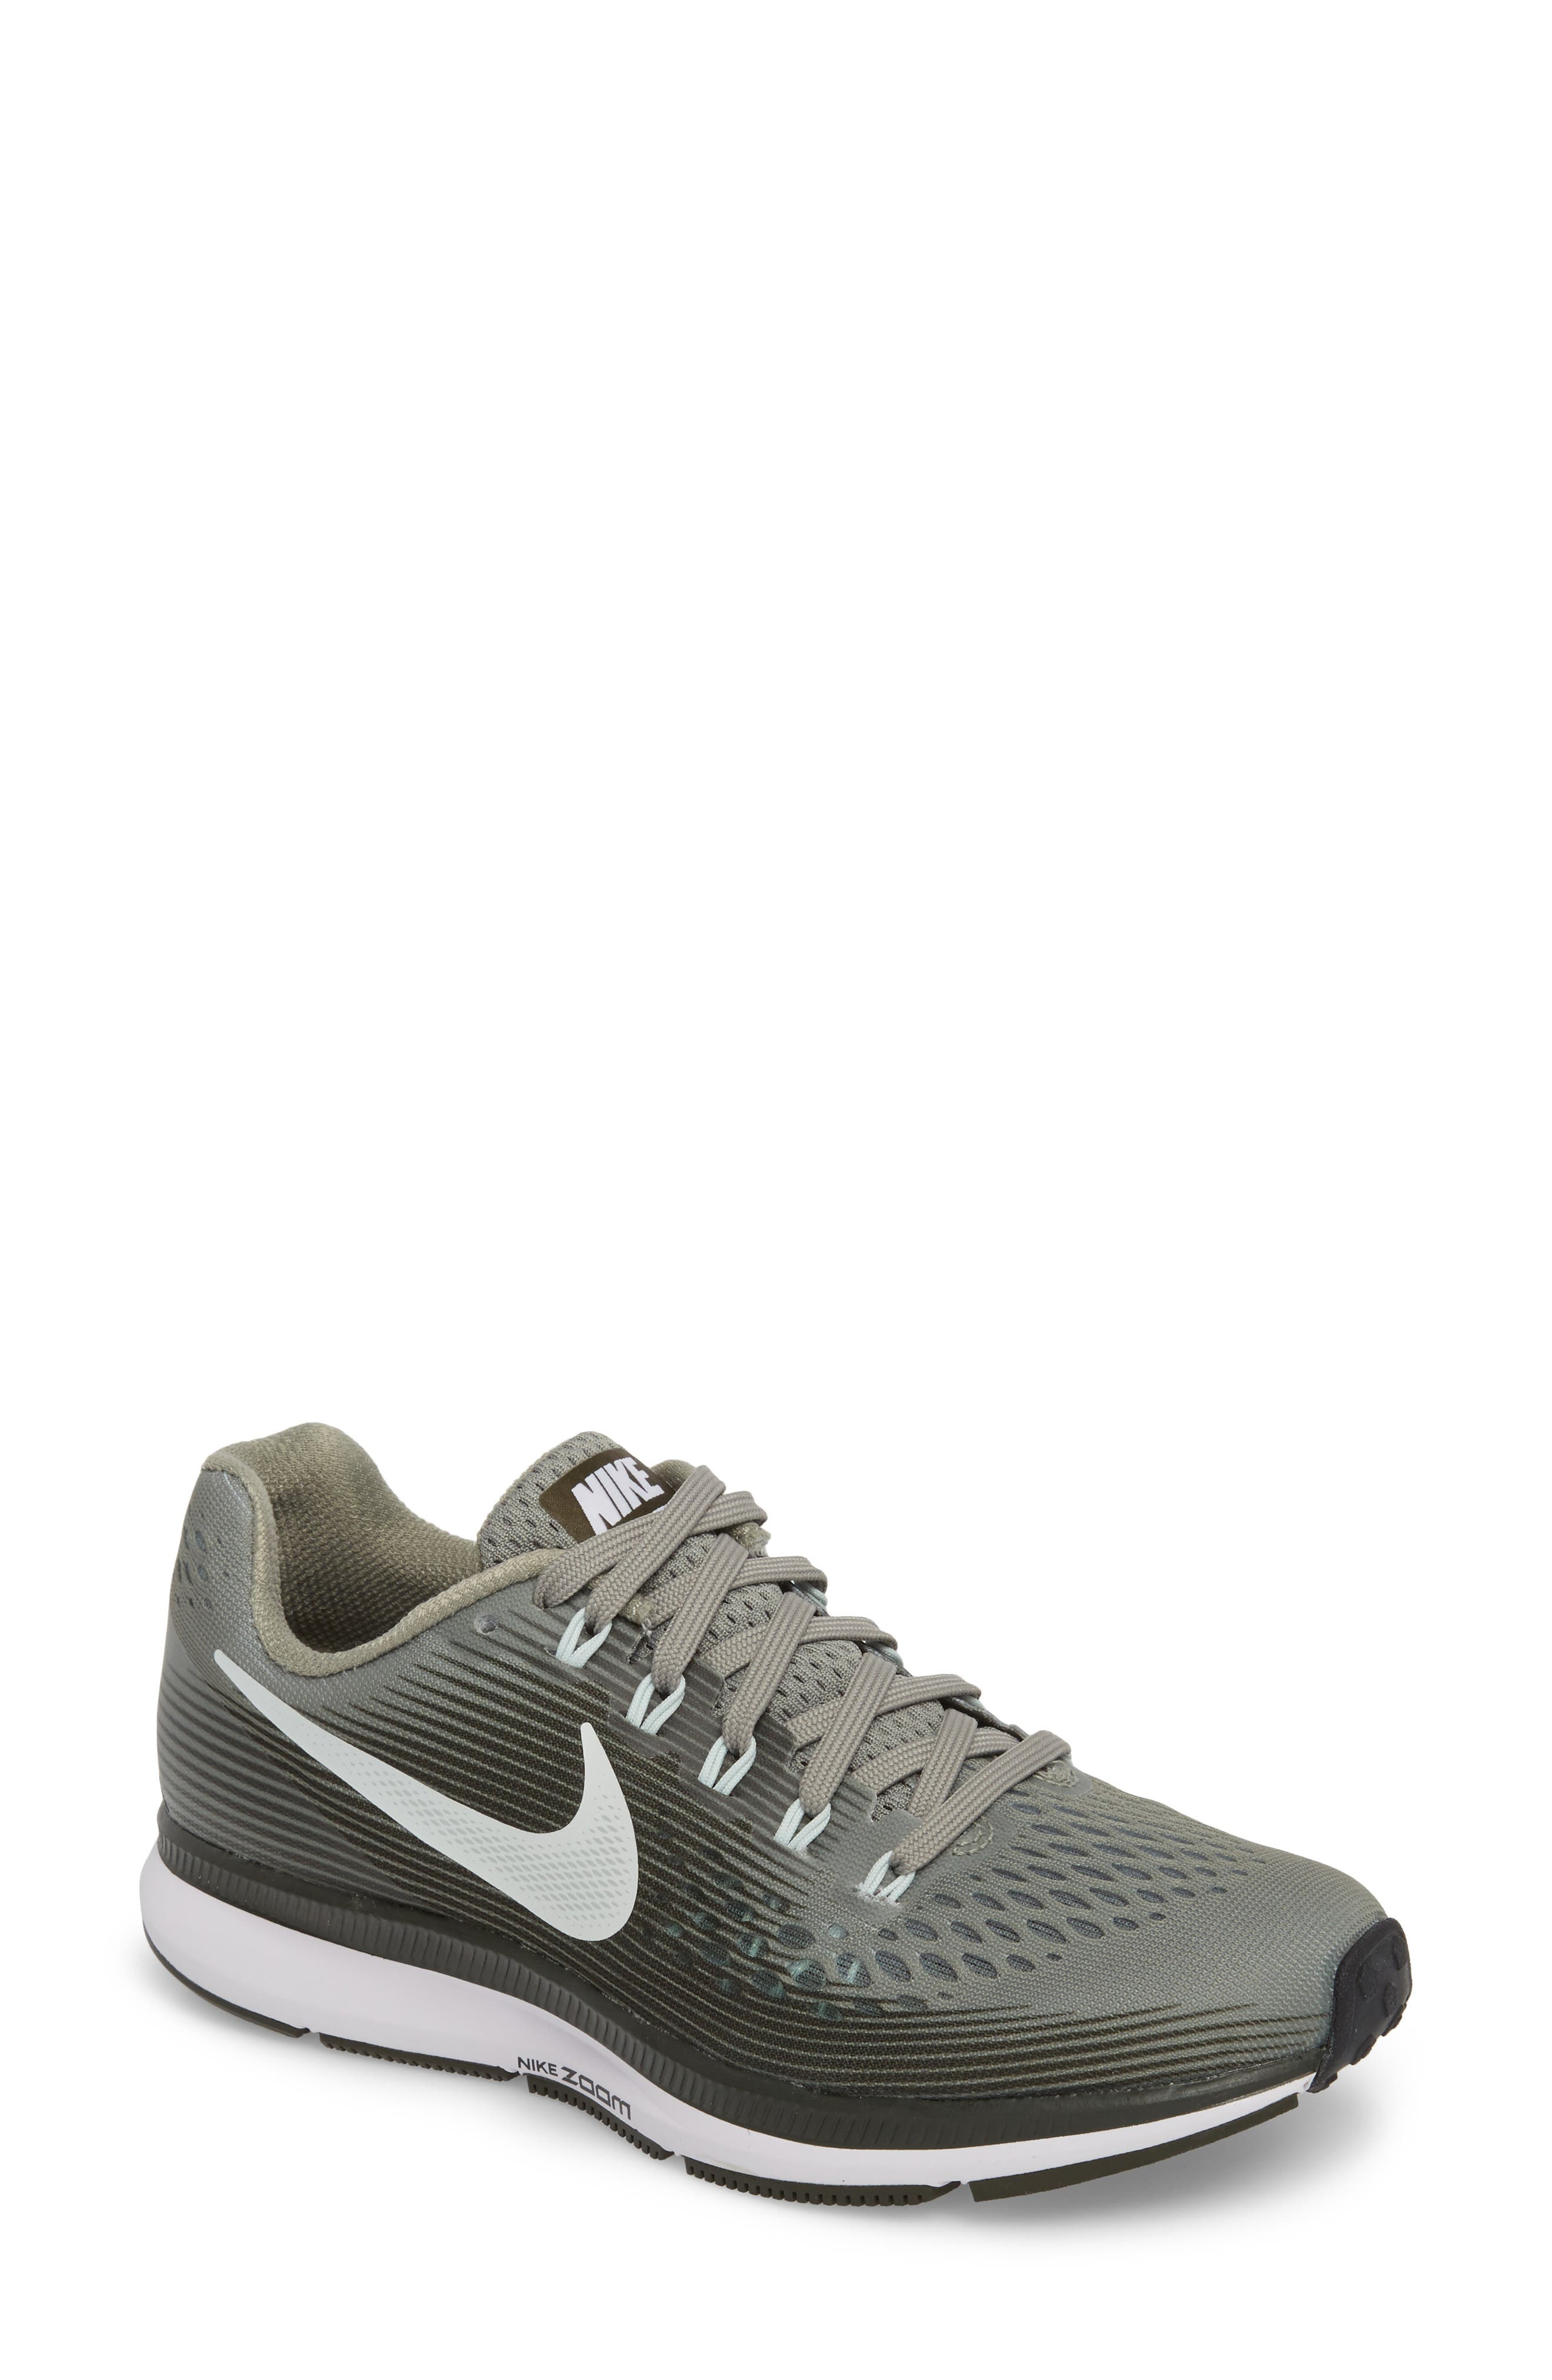 AIR ZOOM PEGASUS 34 RUNNING SHOE